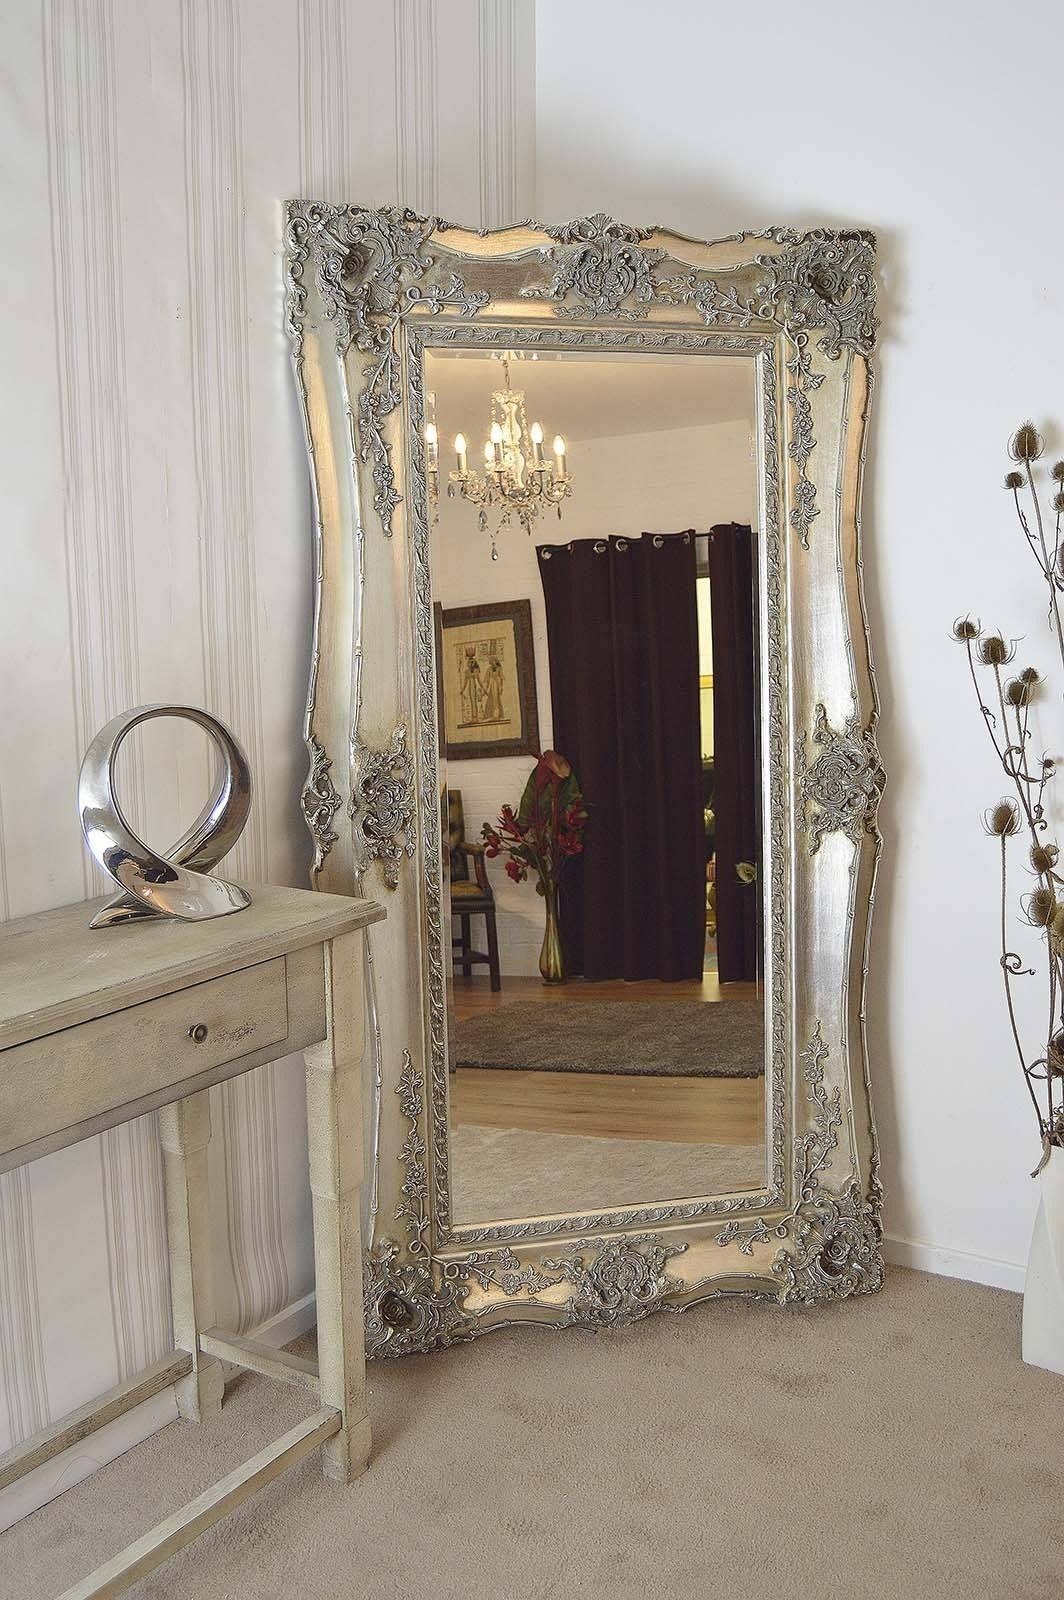 Antique Full Length Wall Mirrors Antique Wood Framed Wall Mirrors with regard to Antique Long Mirrors (Image 2 of 15)